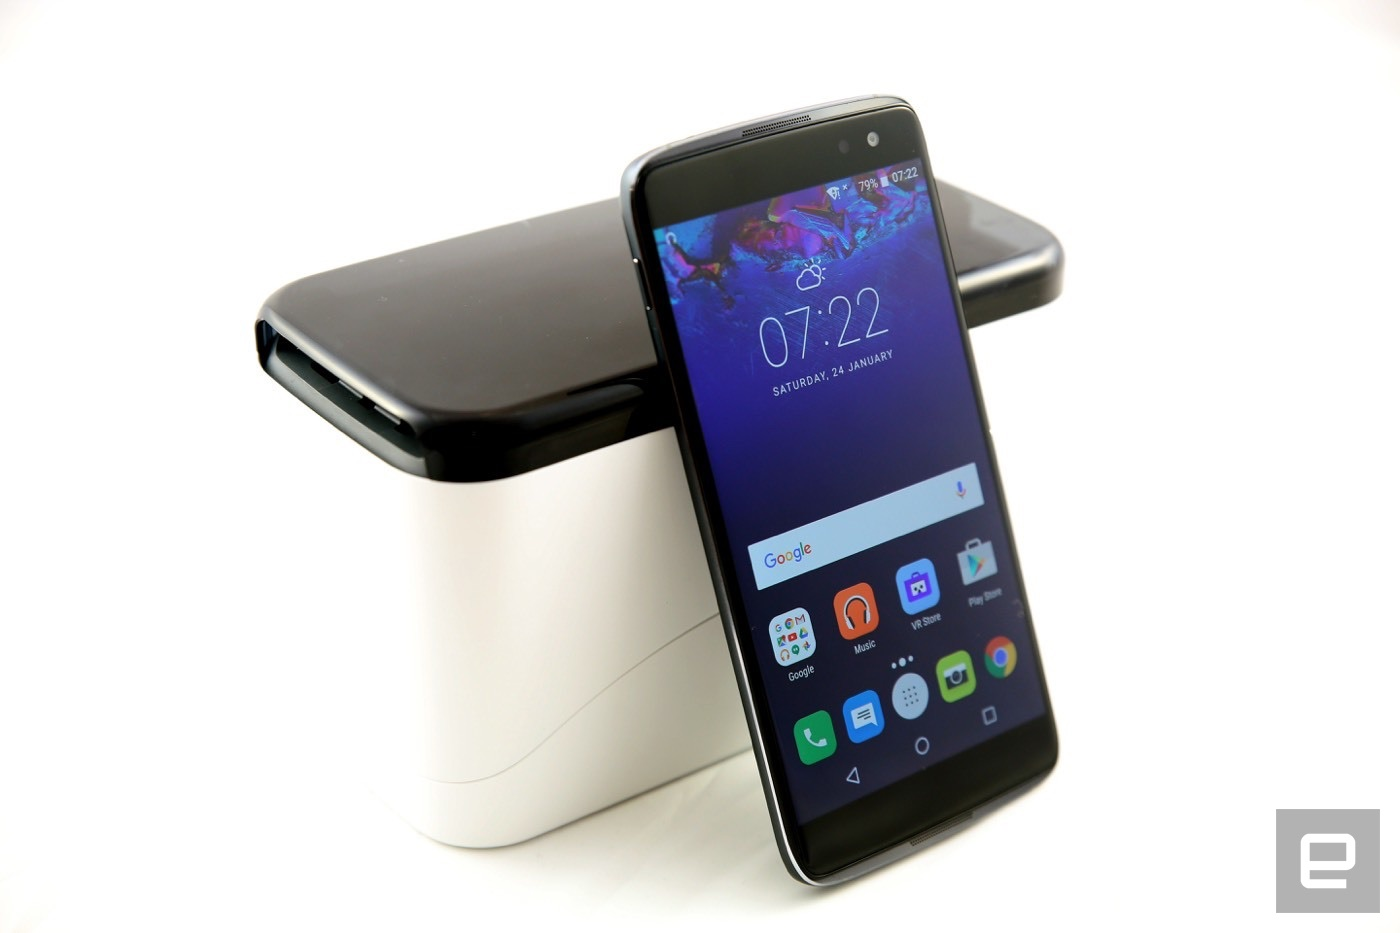 Mwc Revisited The Best Phones In Barcelona This Year